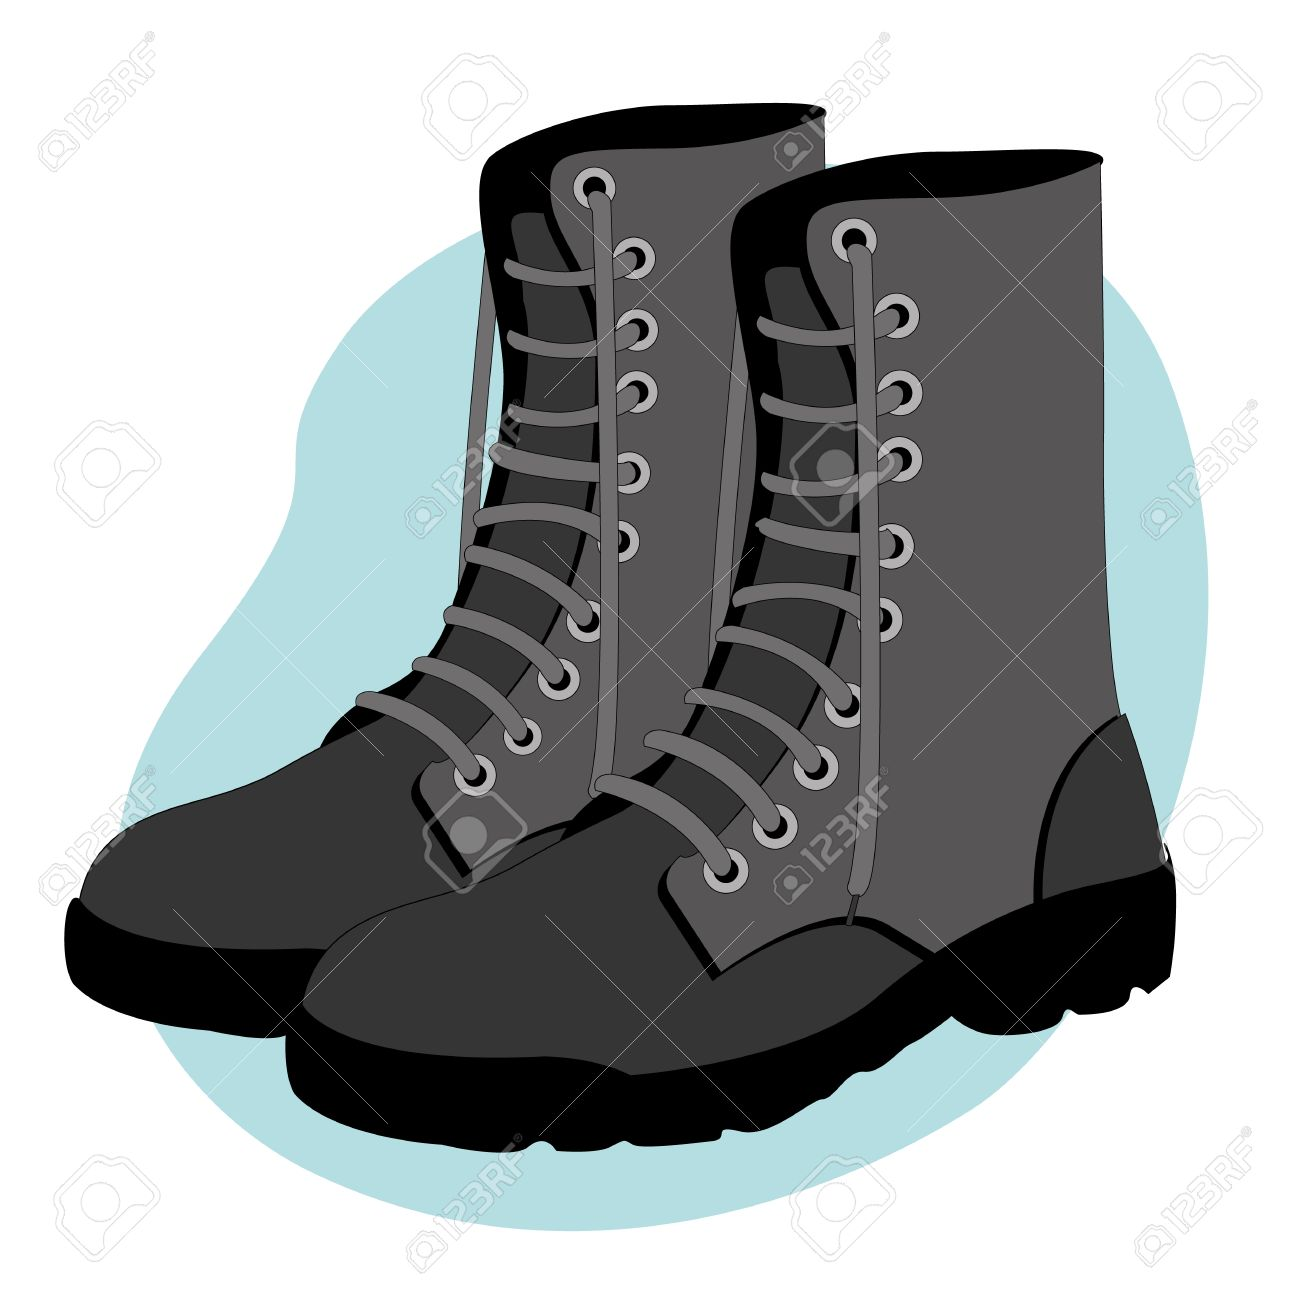 Military Boots uk Military Boots Illustration